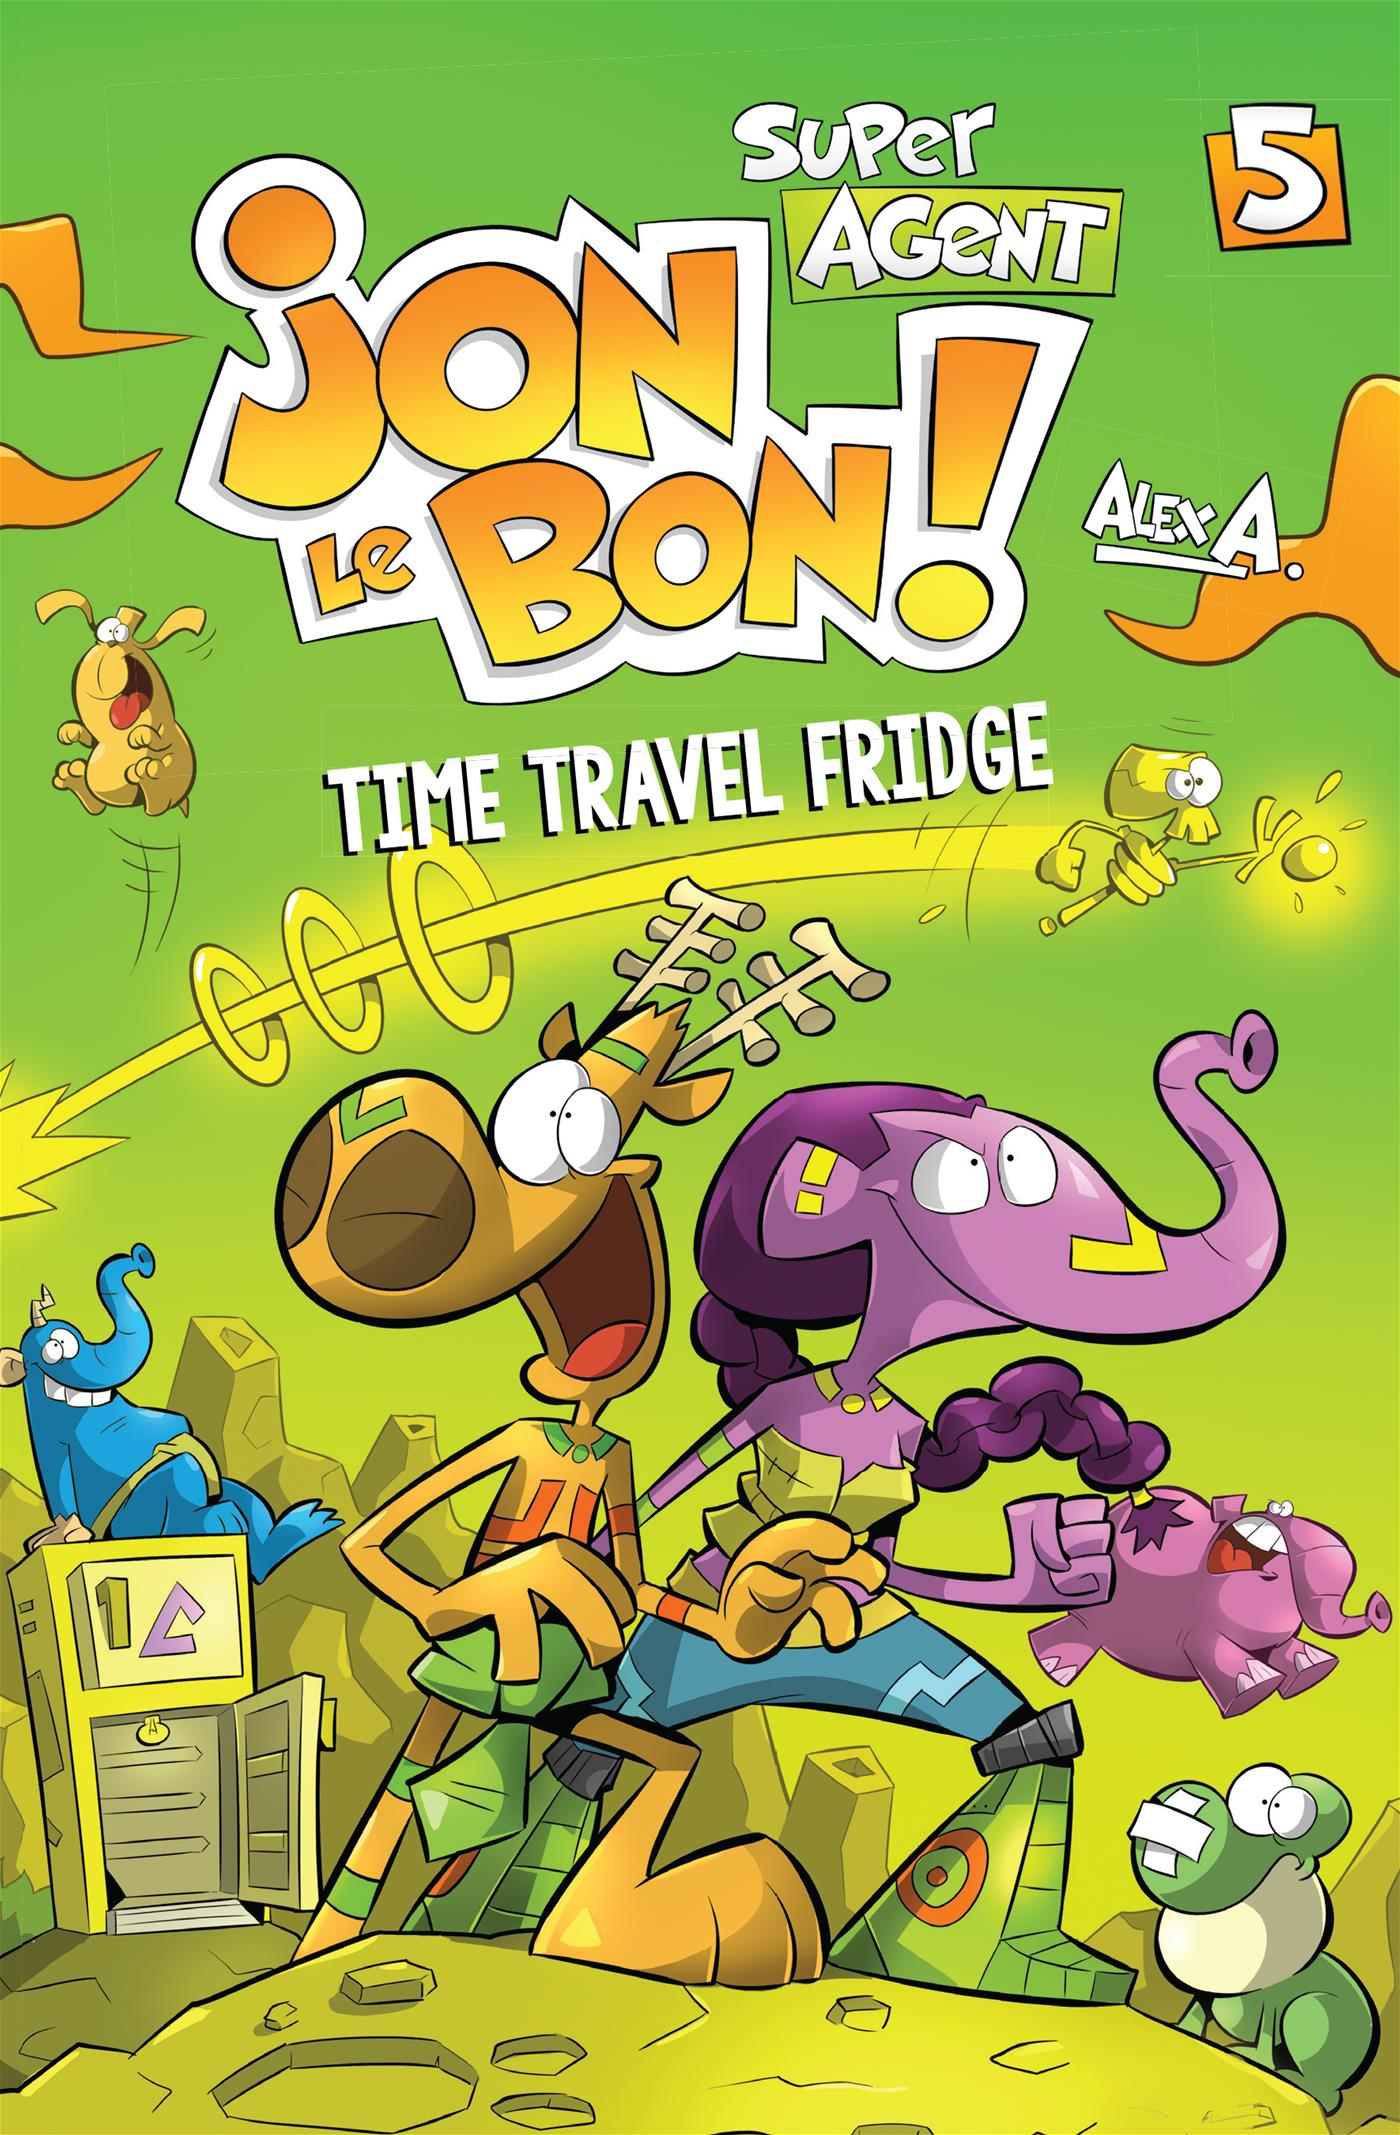 Jon le bon - Vol. 5 - Time Travel Fridge